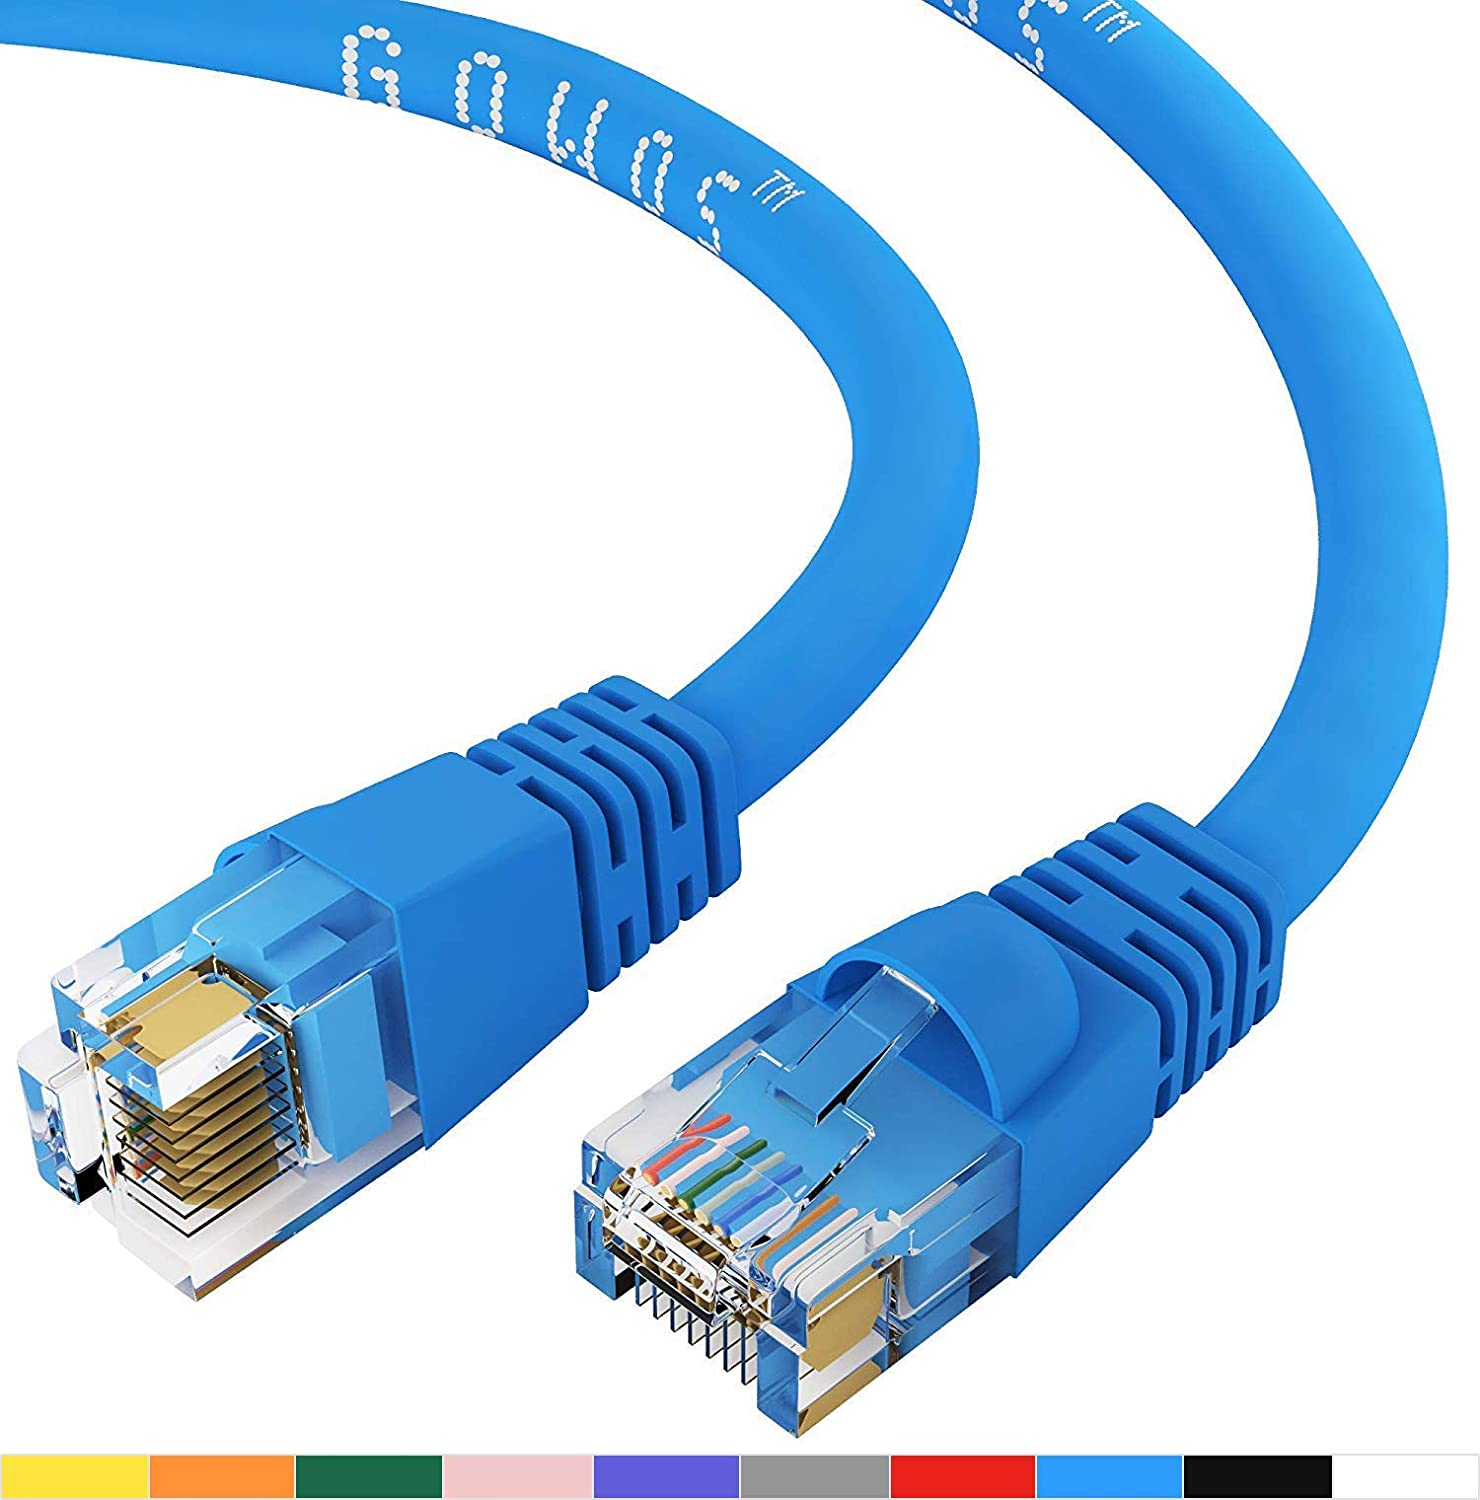 GOWOS Cat6 Ethernet Cable Red 550MHz 10 Gigabit//Sec High Speed LAN Internet//Patch Cable 100-Pack - 1.5 FT 24AWG Network Cable with Gold Plated RJ45 Snagless//Molded//Booted Connector